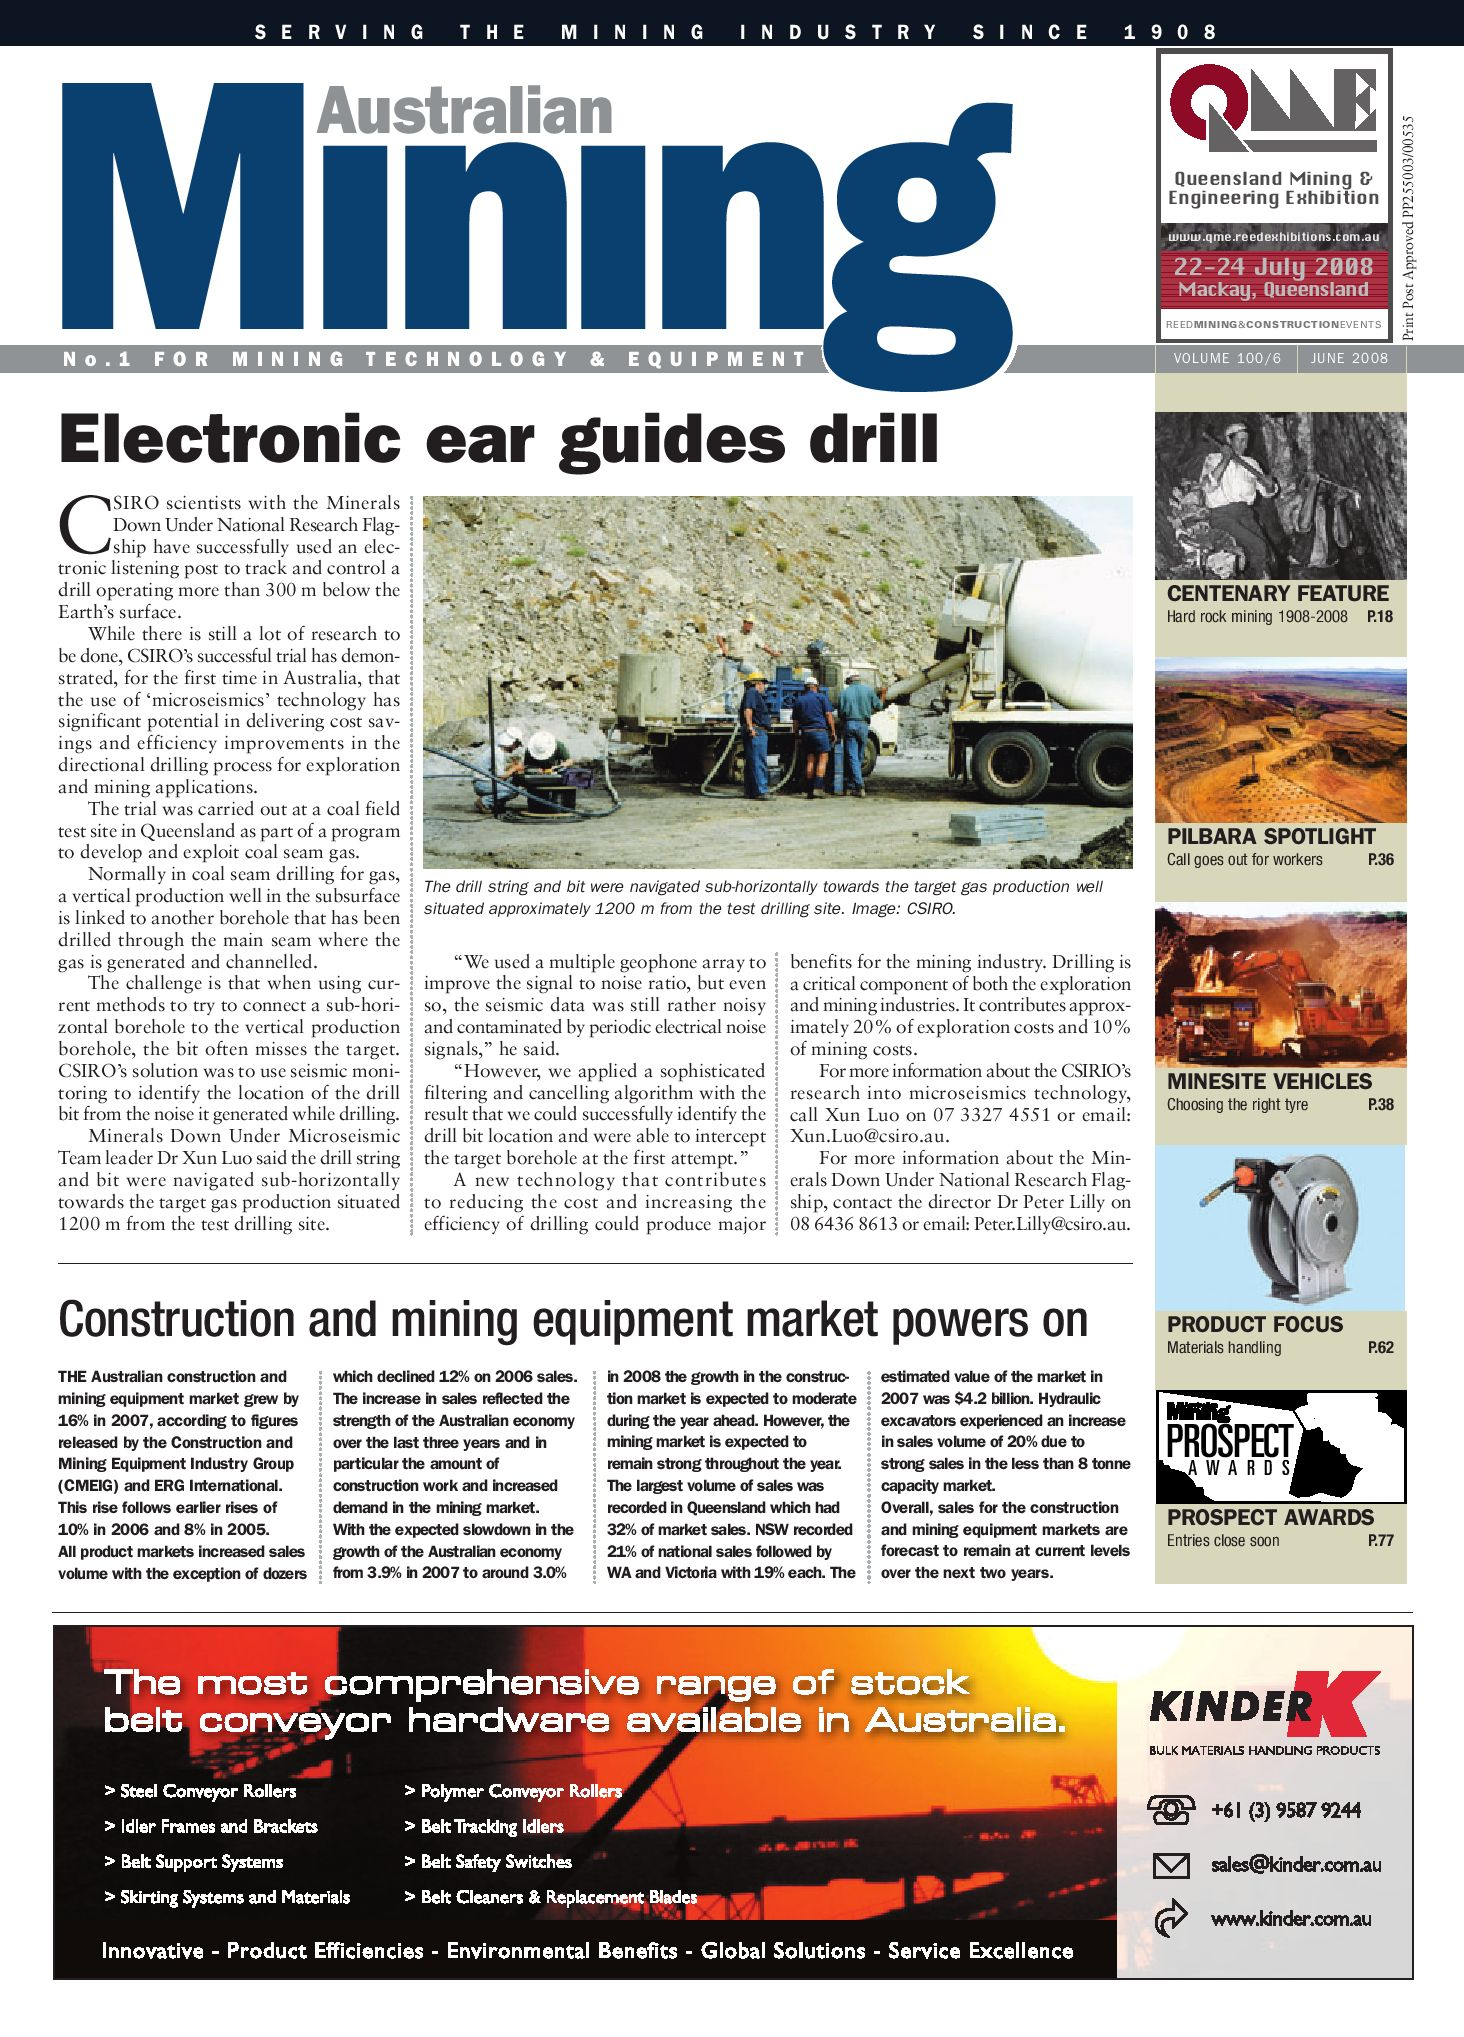 Australia Mining by Reed Business Information RBI - issuu